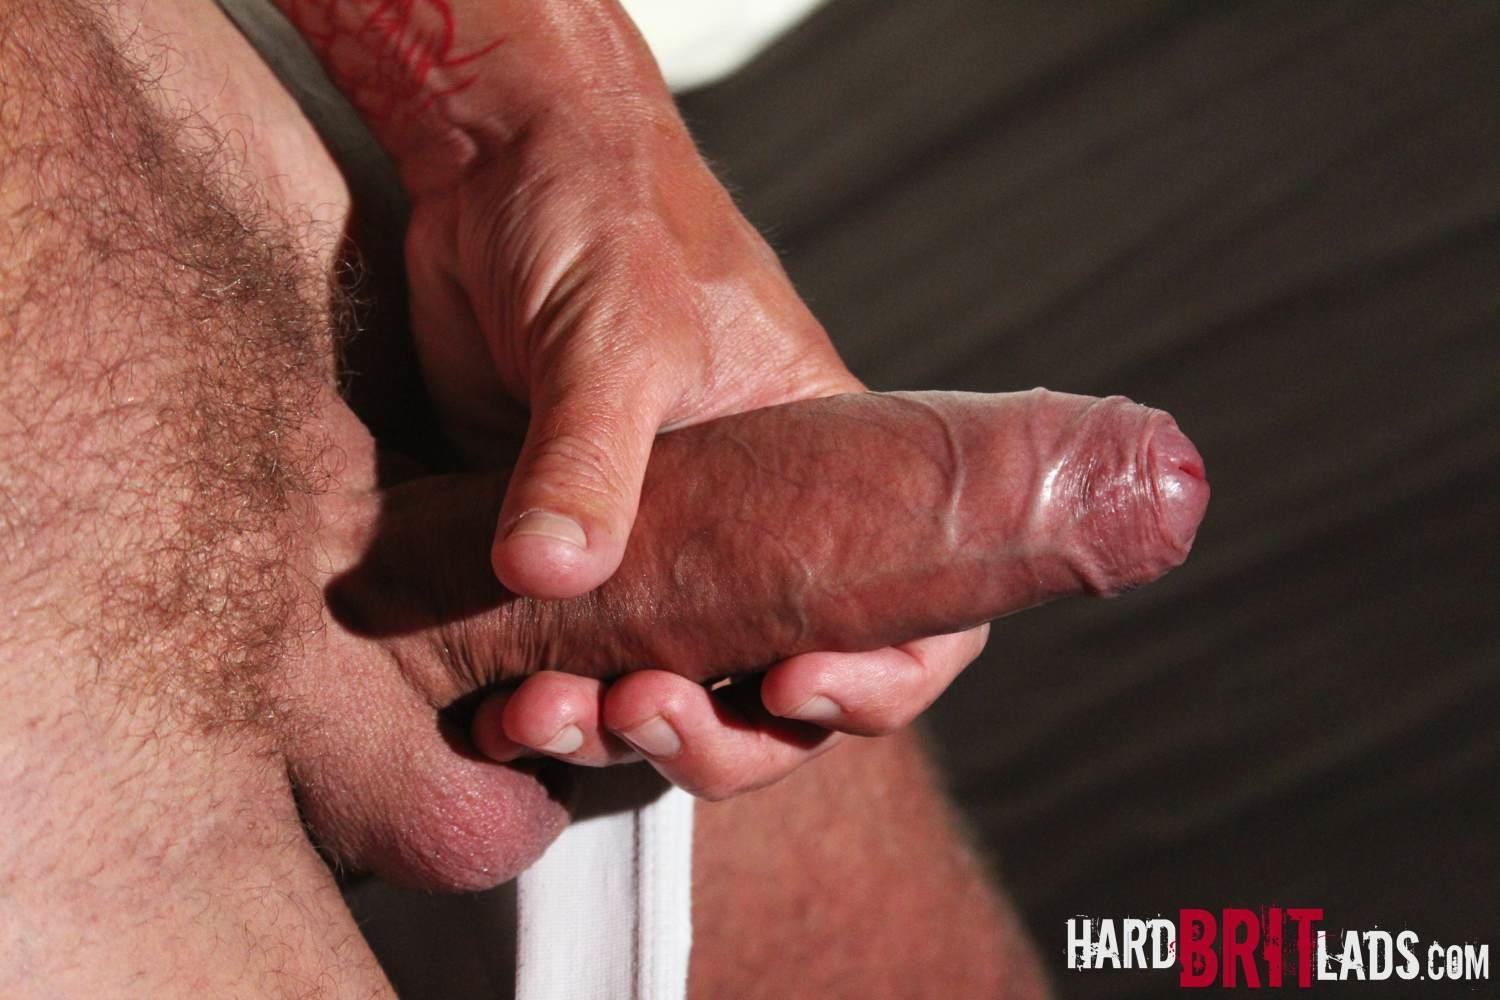 Hard Brit Lads Sam Porter British Muscle Hunk With A big Uncut cock Amateur Gay Porn 08 Tatted Muscle British Hunk Sam Porter Jerking His Big Uncut Cock